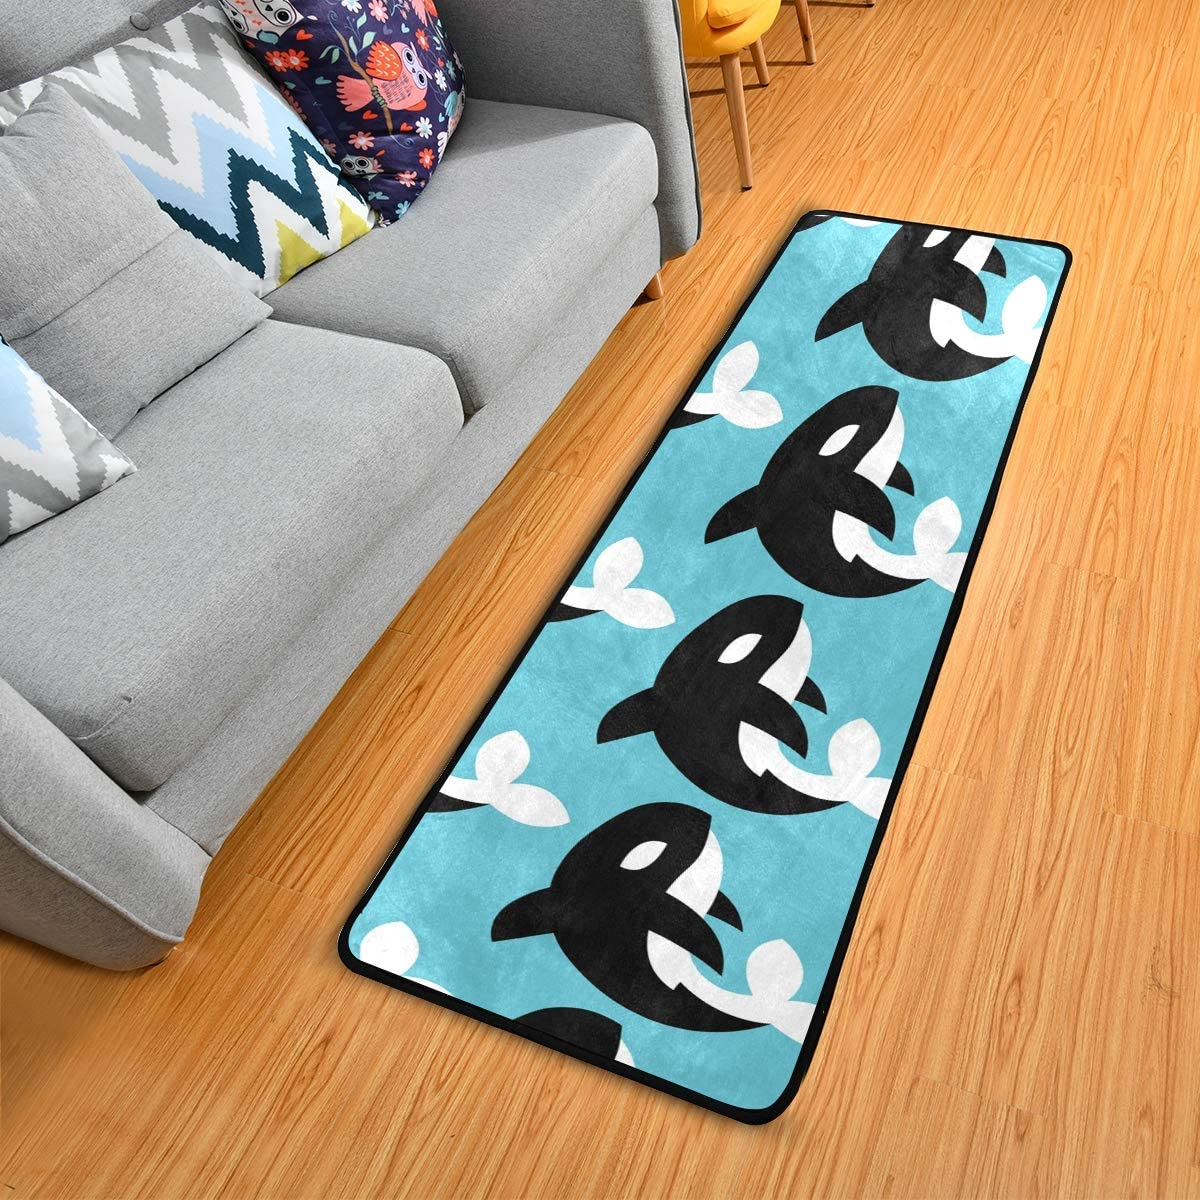 Modern Hallway Runner Rugs Cartoon Black White Whale Blue Living Room Area Rug Super Soft Entryway Long Bed Desk Kitchen Floor Doormat 24x72in 2 X6 Kitchen Dining